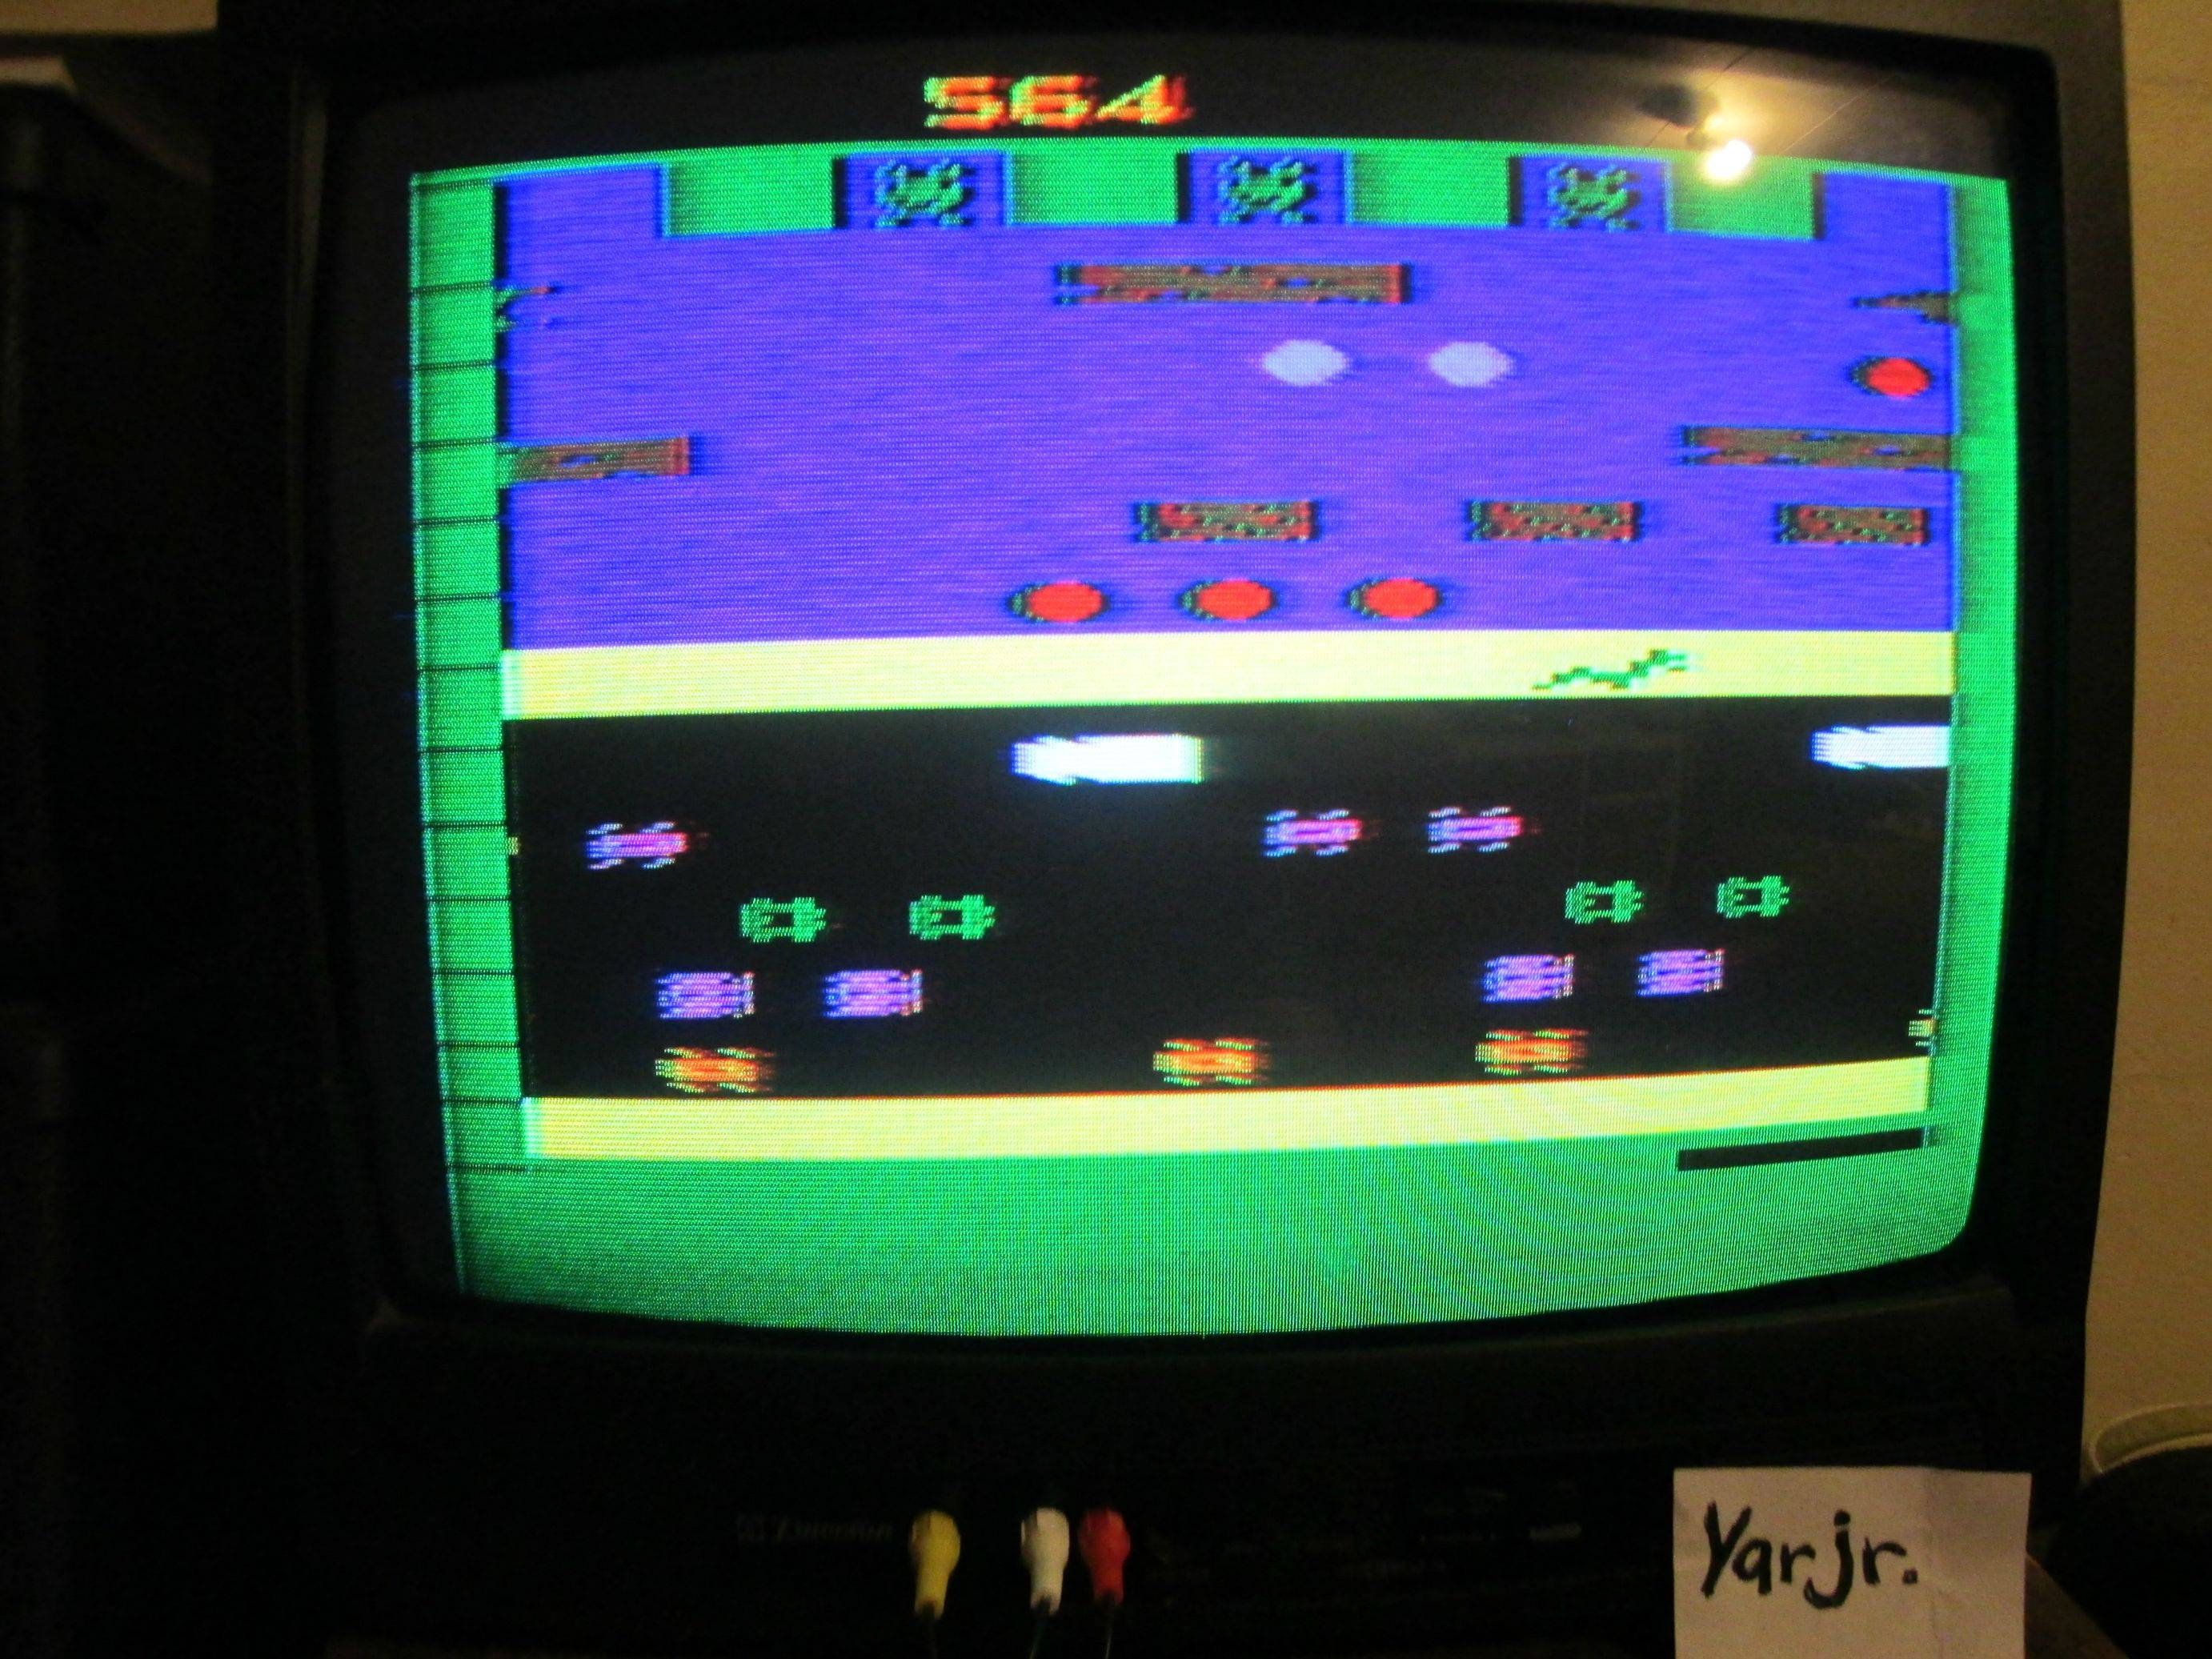 yarjr: Frogger (Atari 2600 Expert/A) 564 points on 2013-09-03 22:40:18